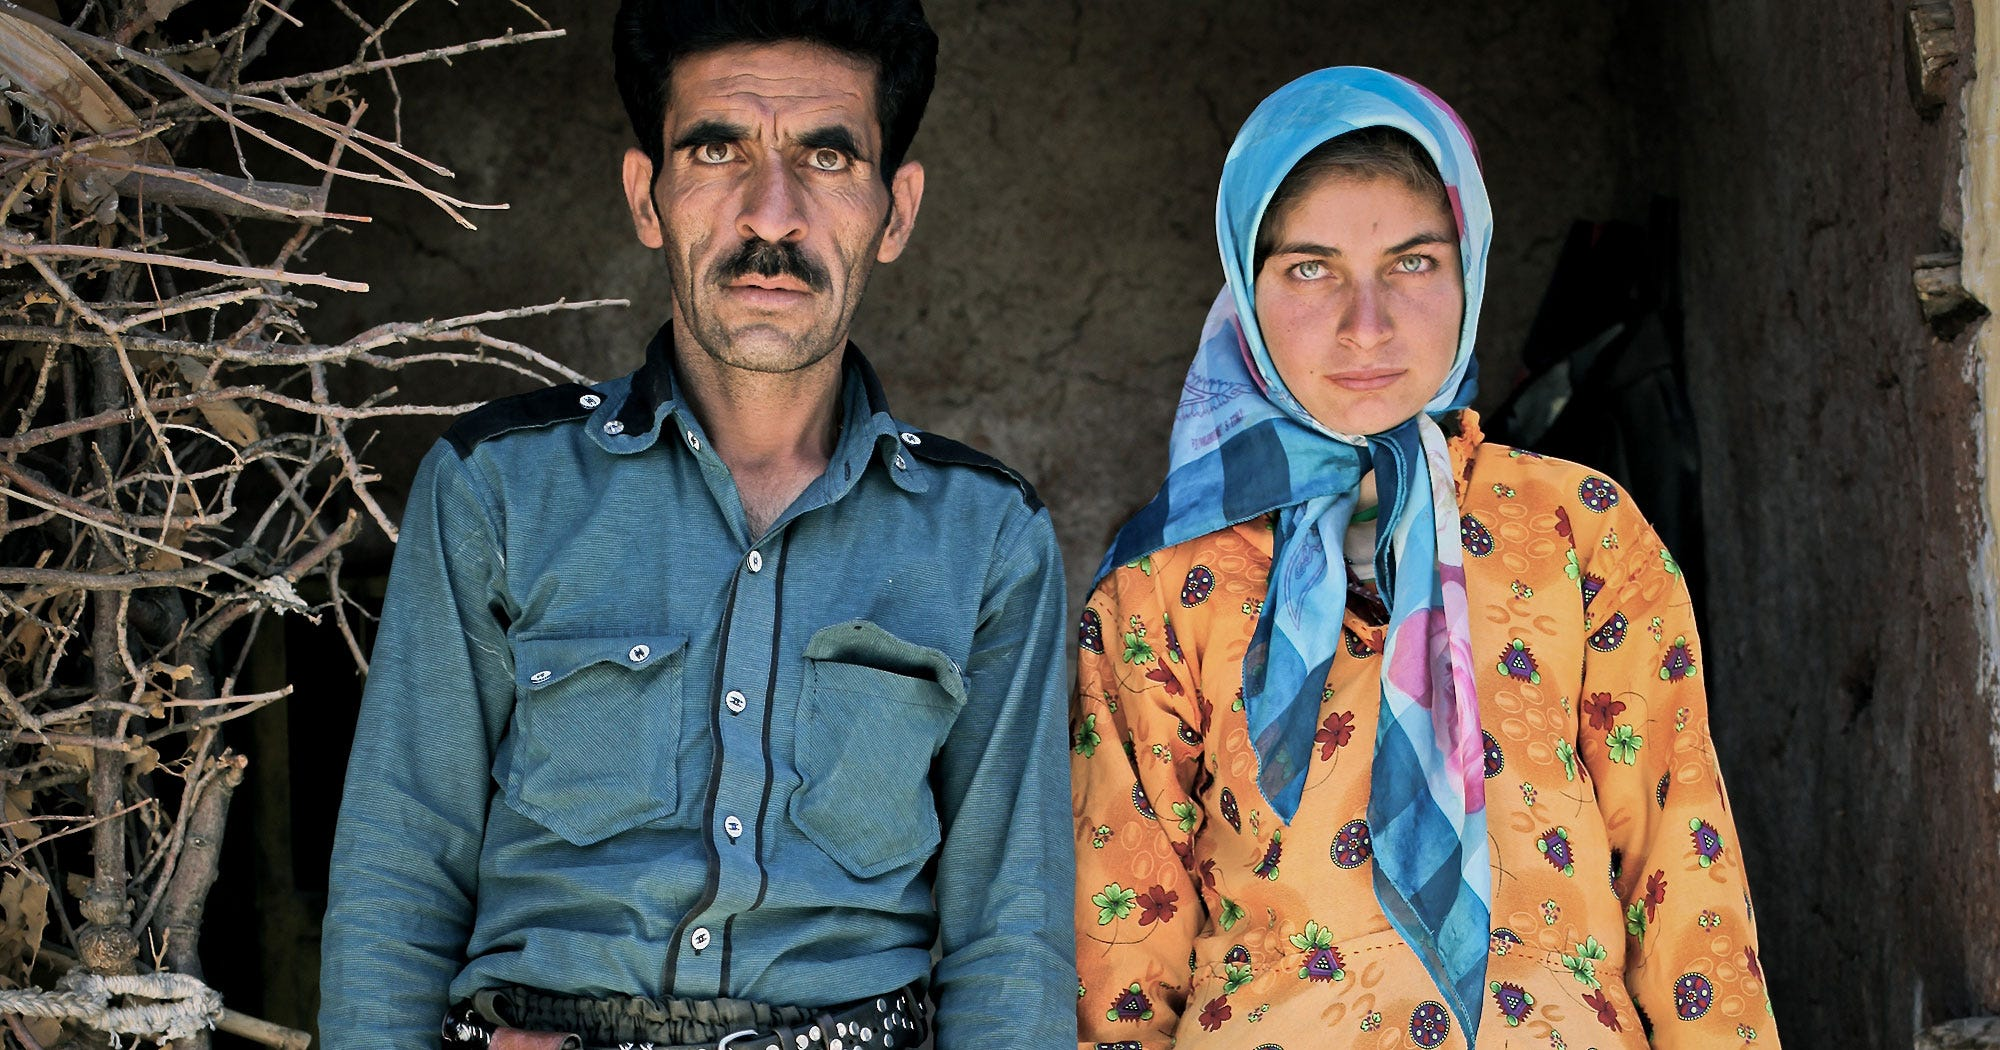 10 Moving Portraits Of Dads & Daughters That Show Real Family Life In Iran